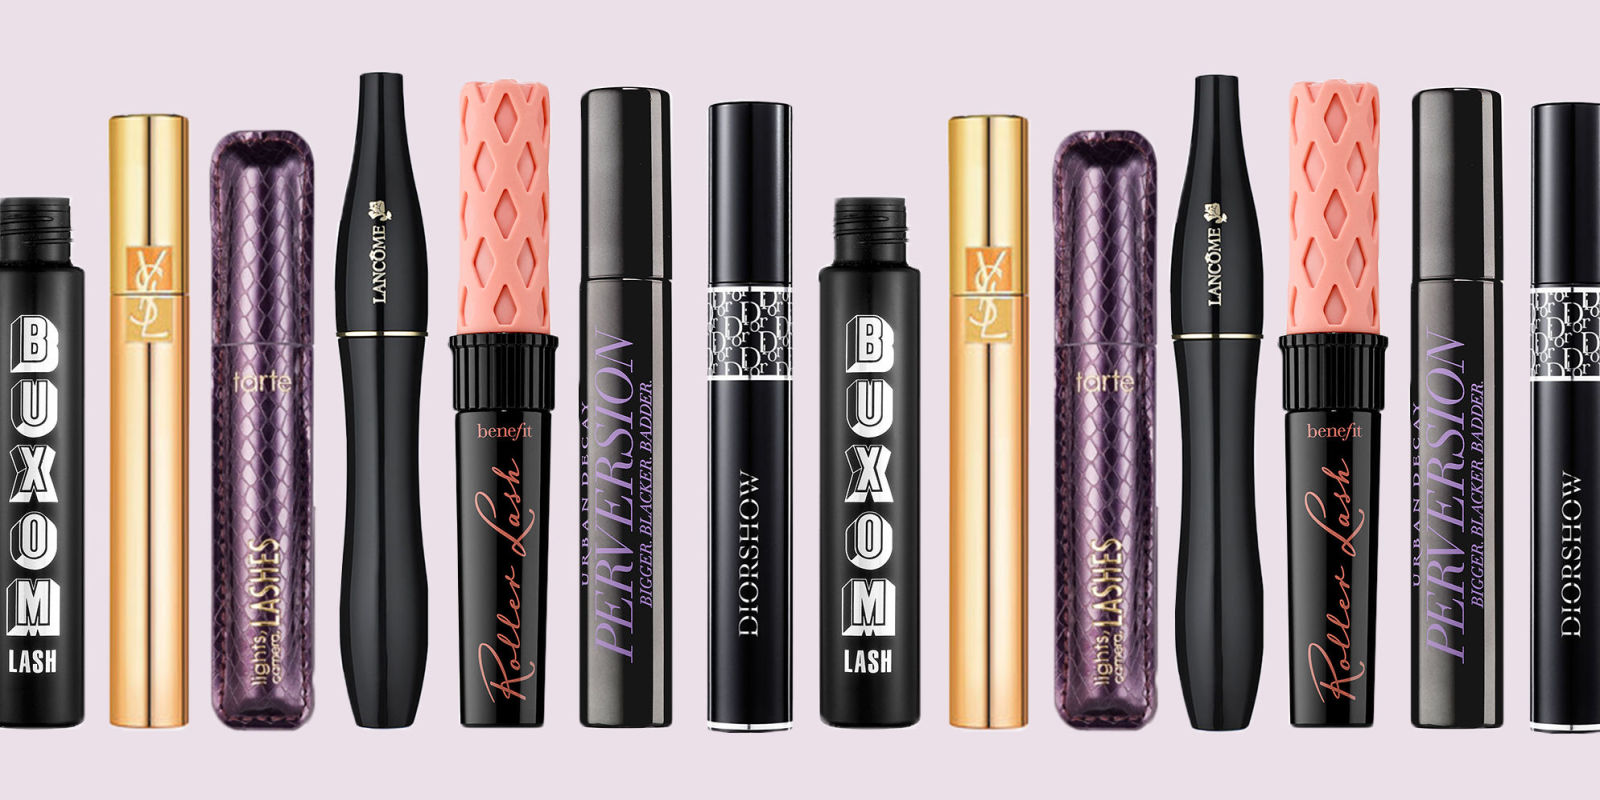 14 best mascara reviews in 2017 best selling iconic mascaras of all time. Black Bedroom Furniture Sets. Home Design Ideas